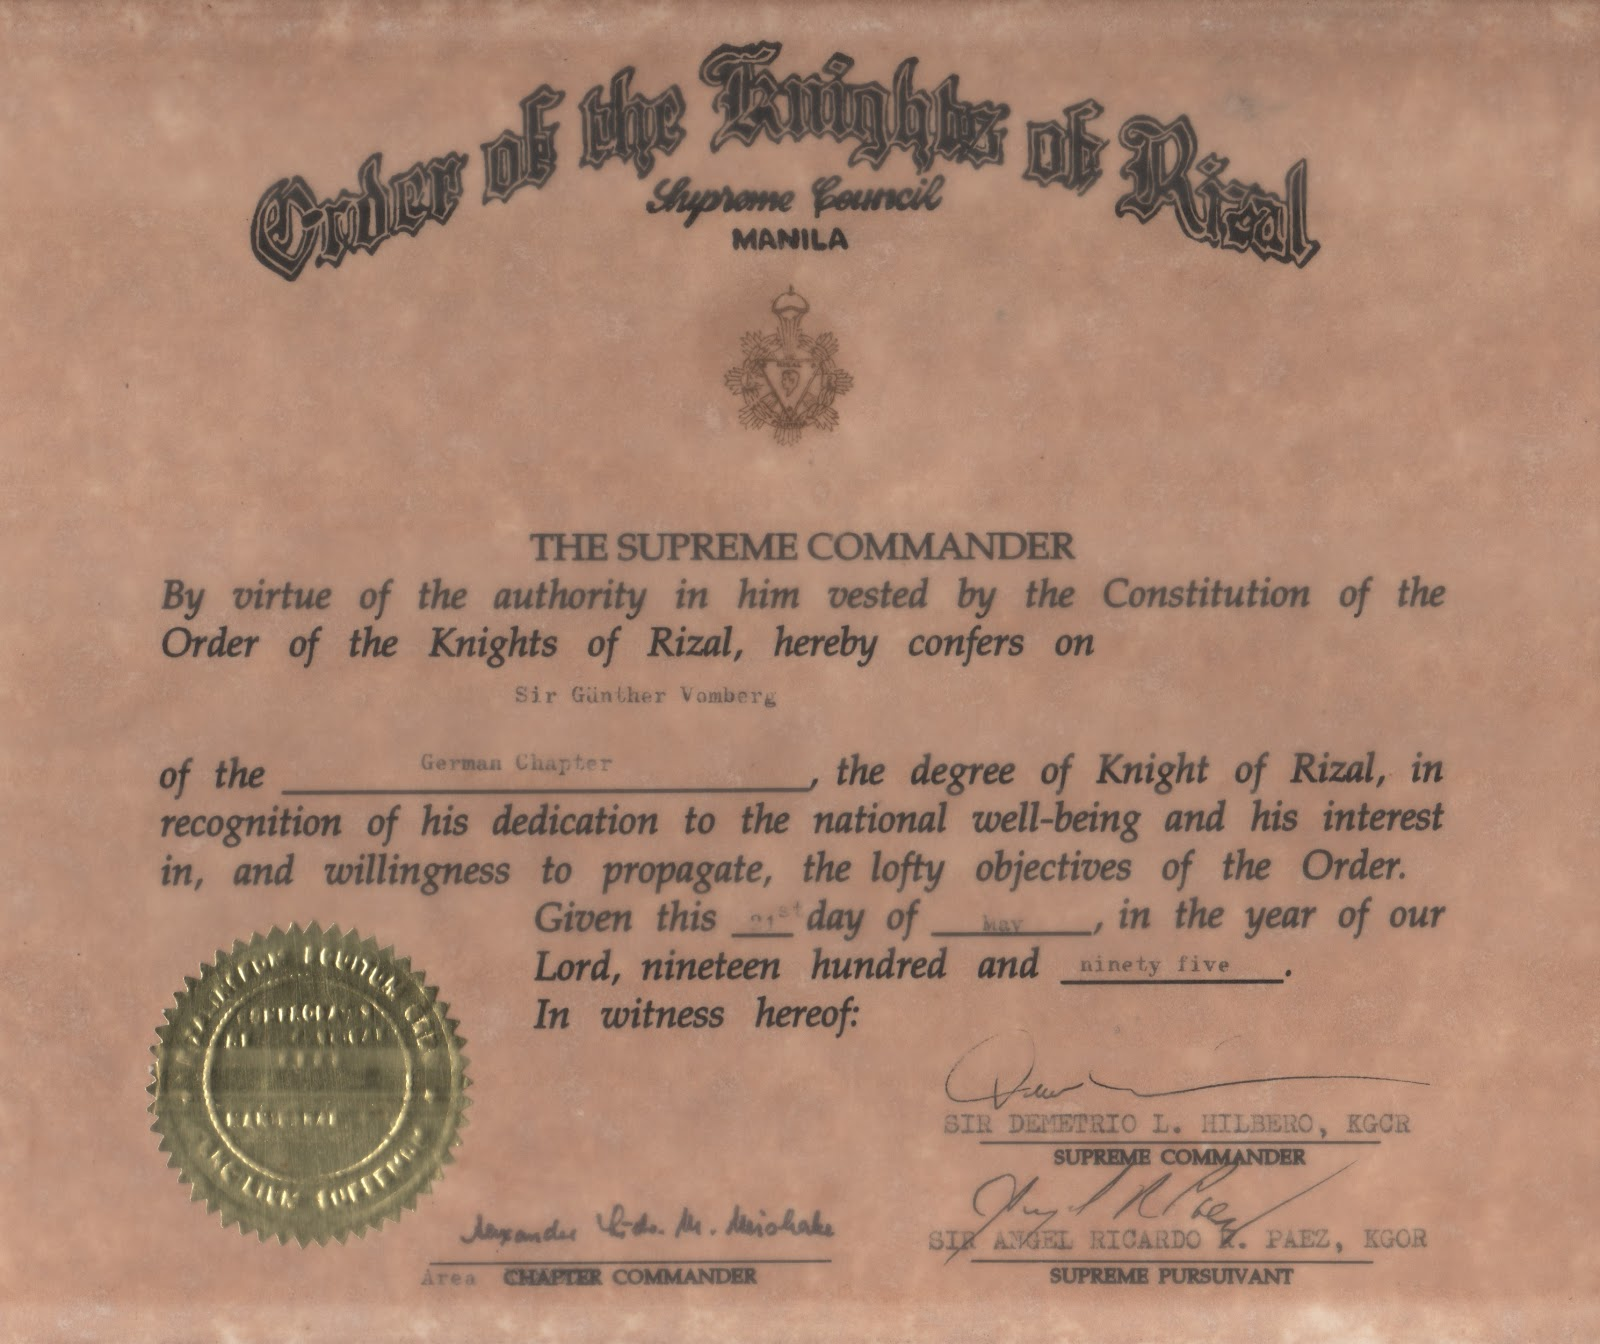 Certificate knighthood template images certificate design and certificate of knighthood template gallery certificate design certificate knighthood template gallery certificate design and guenther vomberg yelopaper Image collections